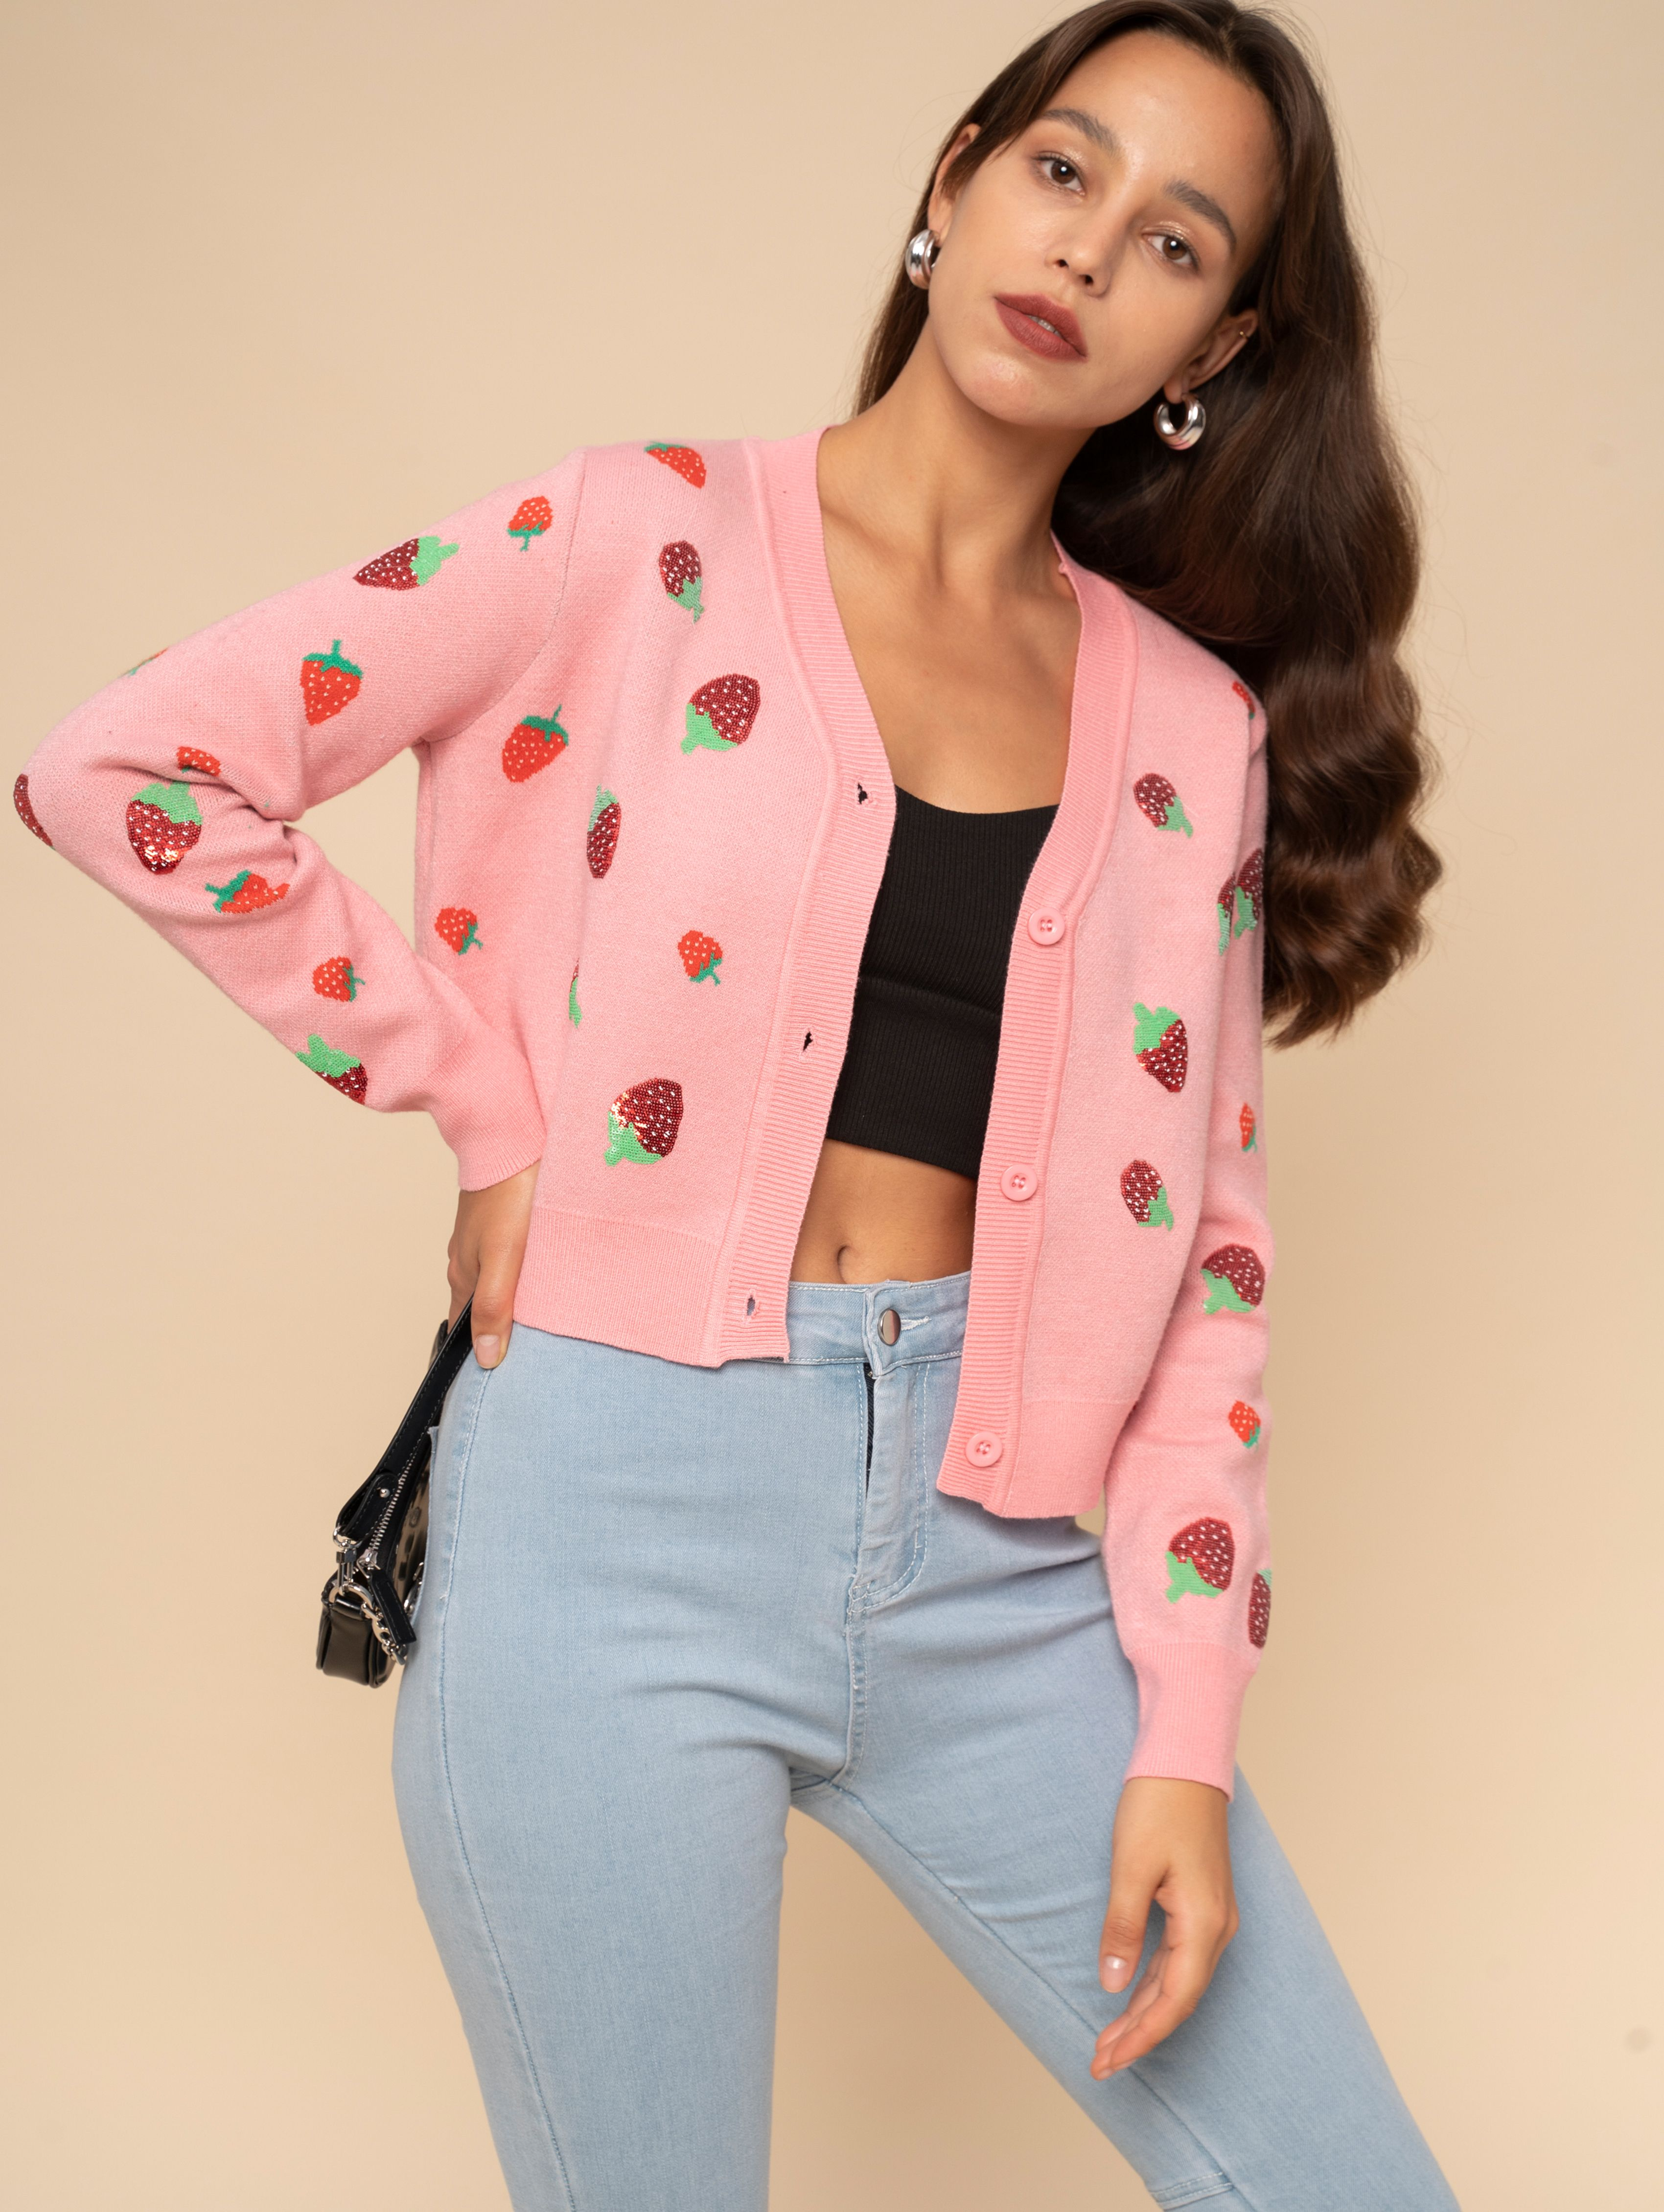 For the Love of Sequins Strawberry Cardigan